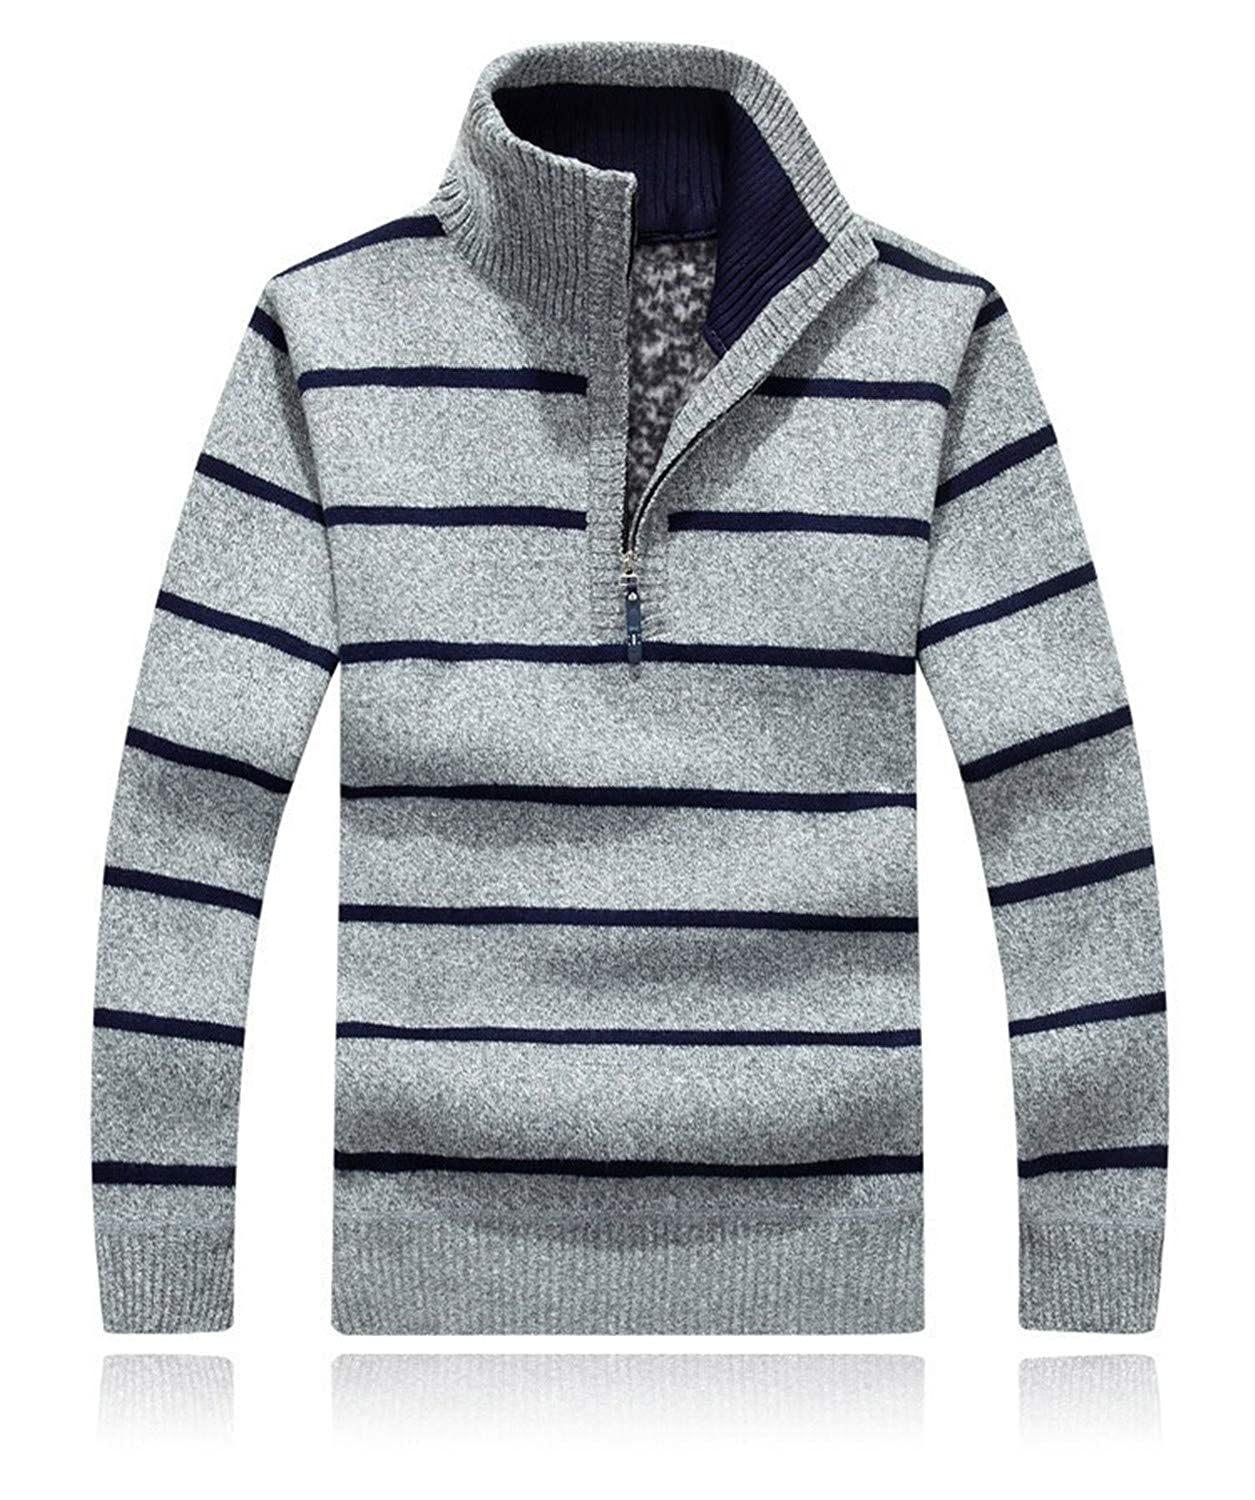 Nerefy Men Striped Sweatercoat Pullovers Thick Knitted Sweaters Stand Collar